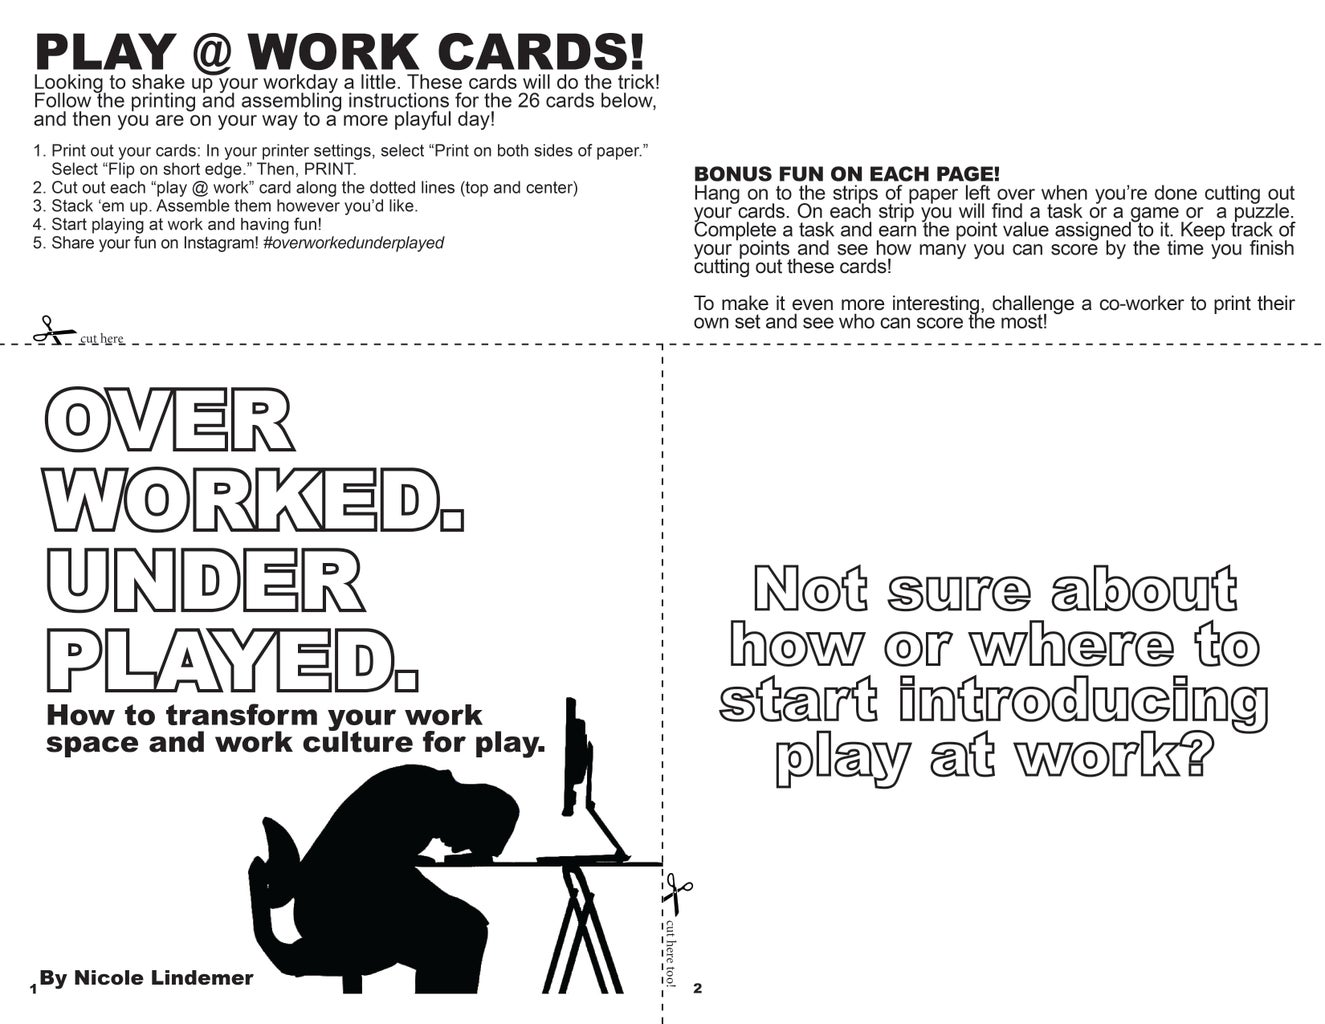 Print Out Your Cards